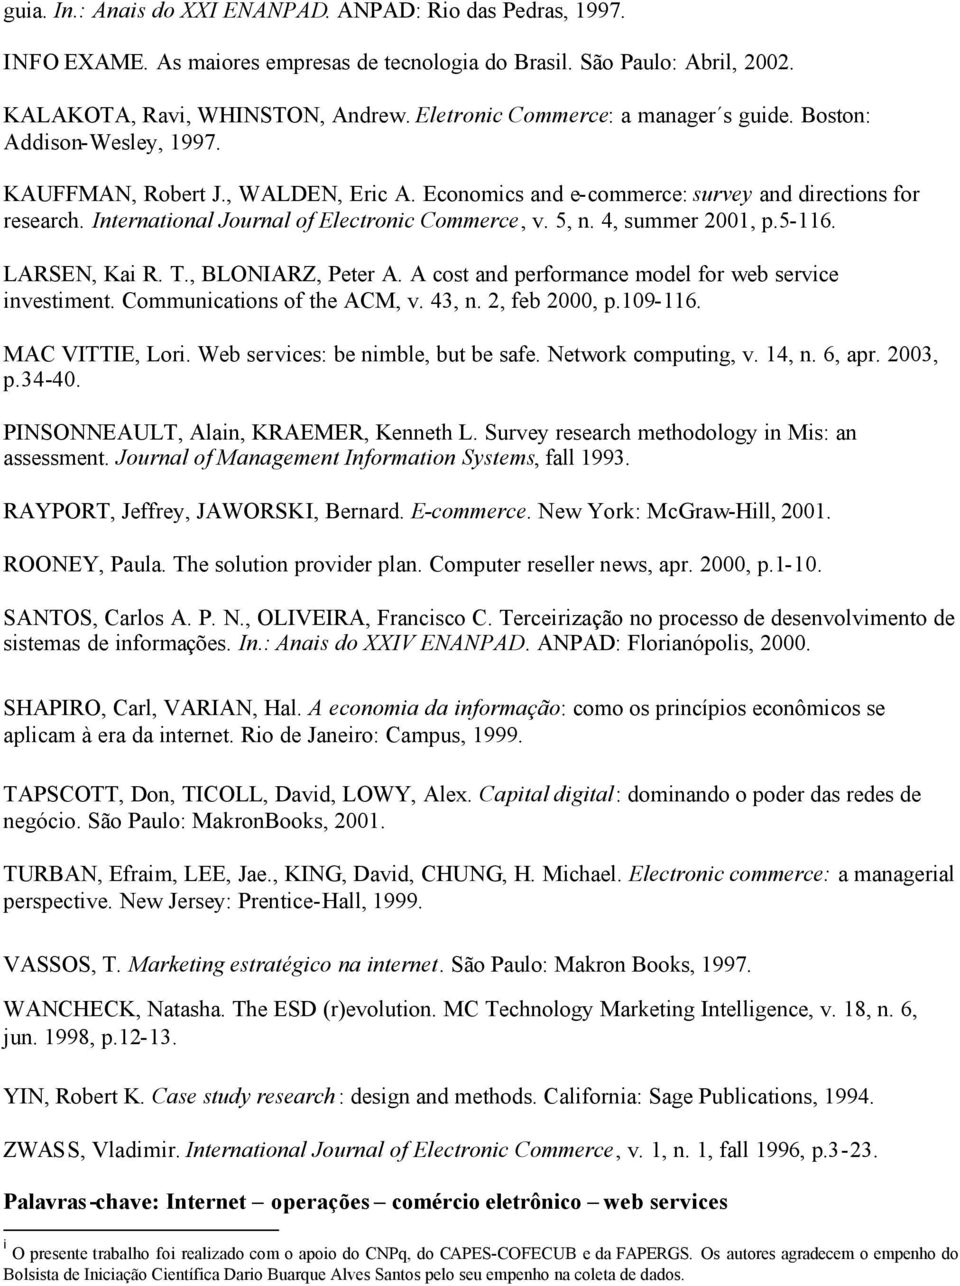 International Journal of Electronic Commerce, v. 5, n. 4, summer 2001, p.5-116. LARSEN, Kai R. T., BLONIARZ, Peter A. A cost and performance model for web service investiment.